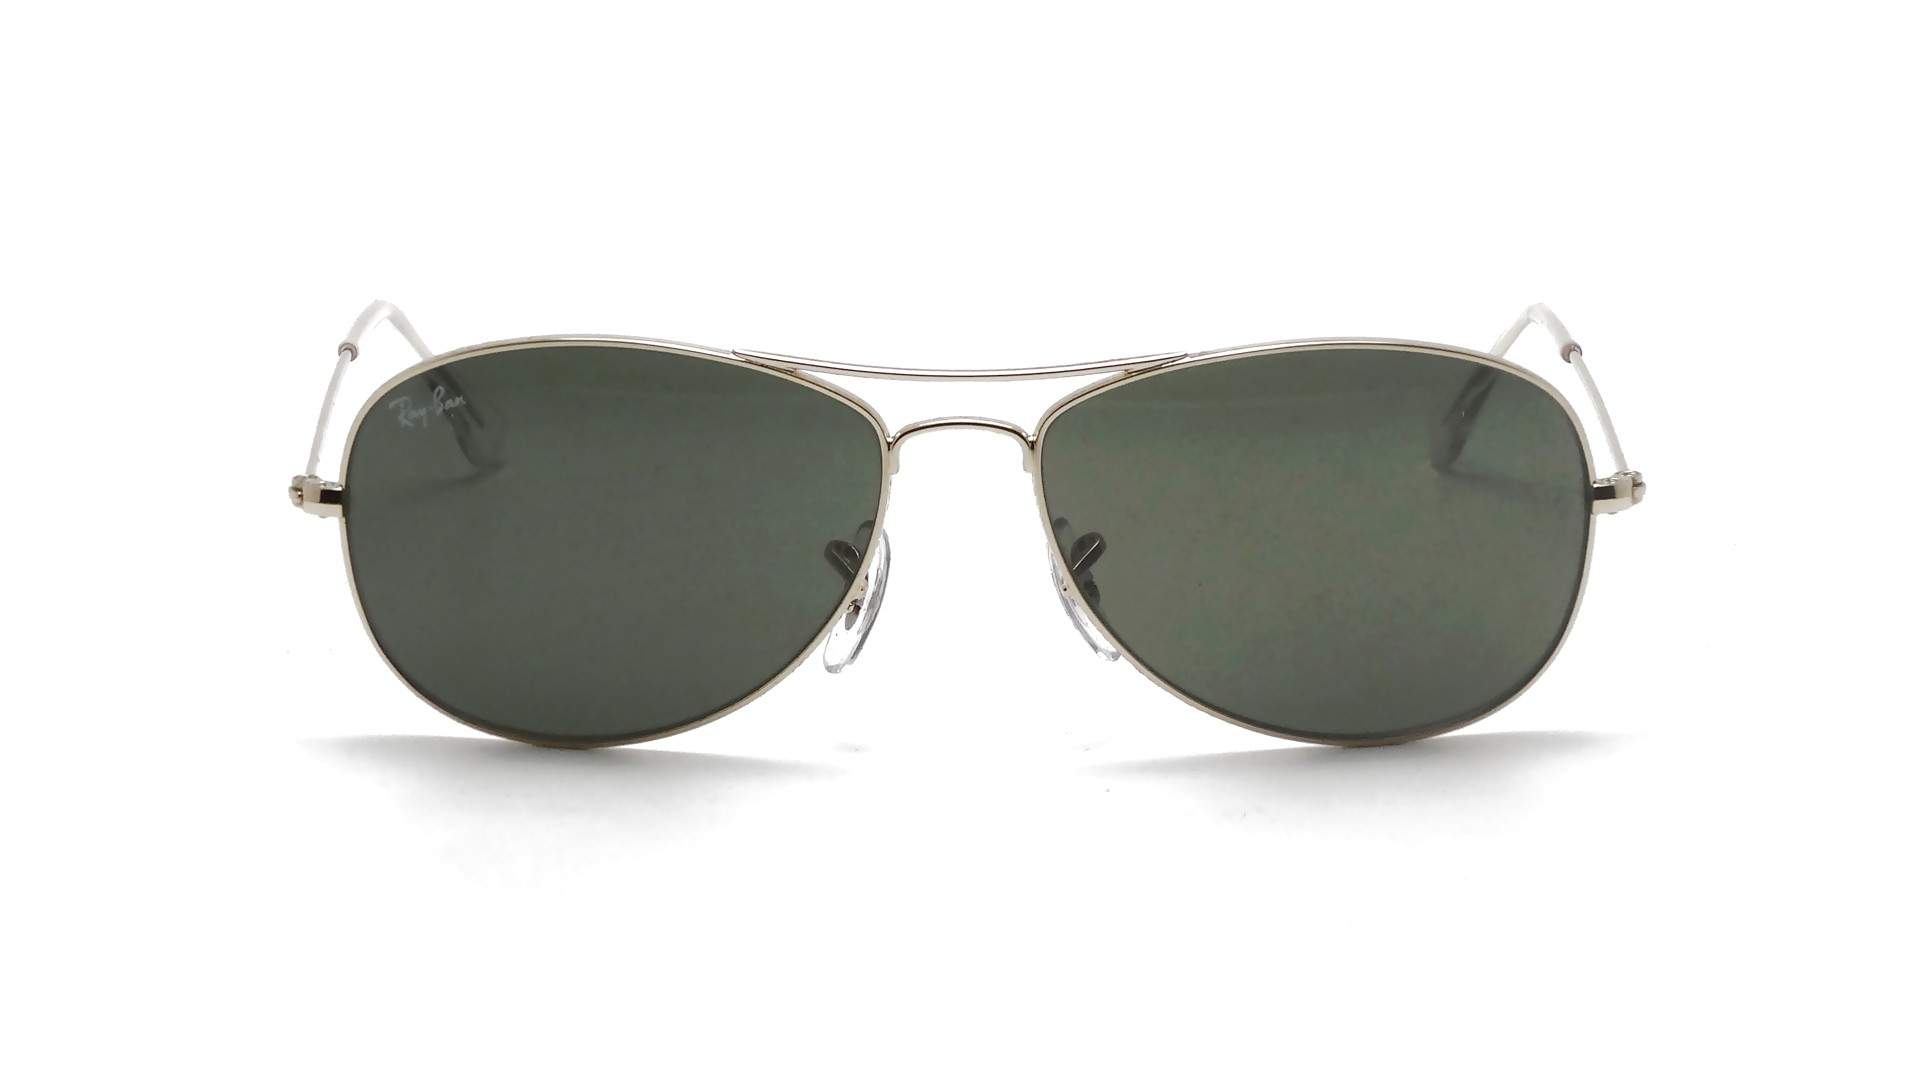 67a2da9602 Sunglasses Ray-Ban Cockpit Gold RB3362 001 56-14 Medium